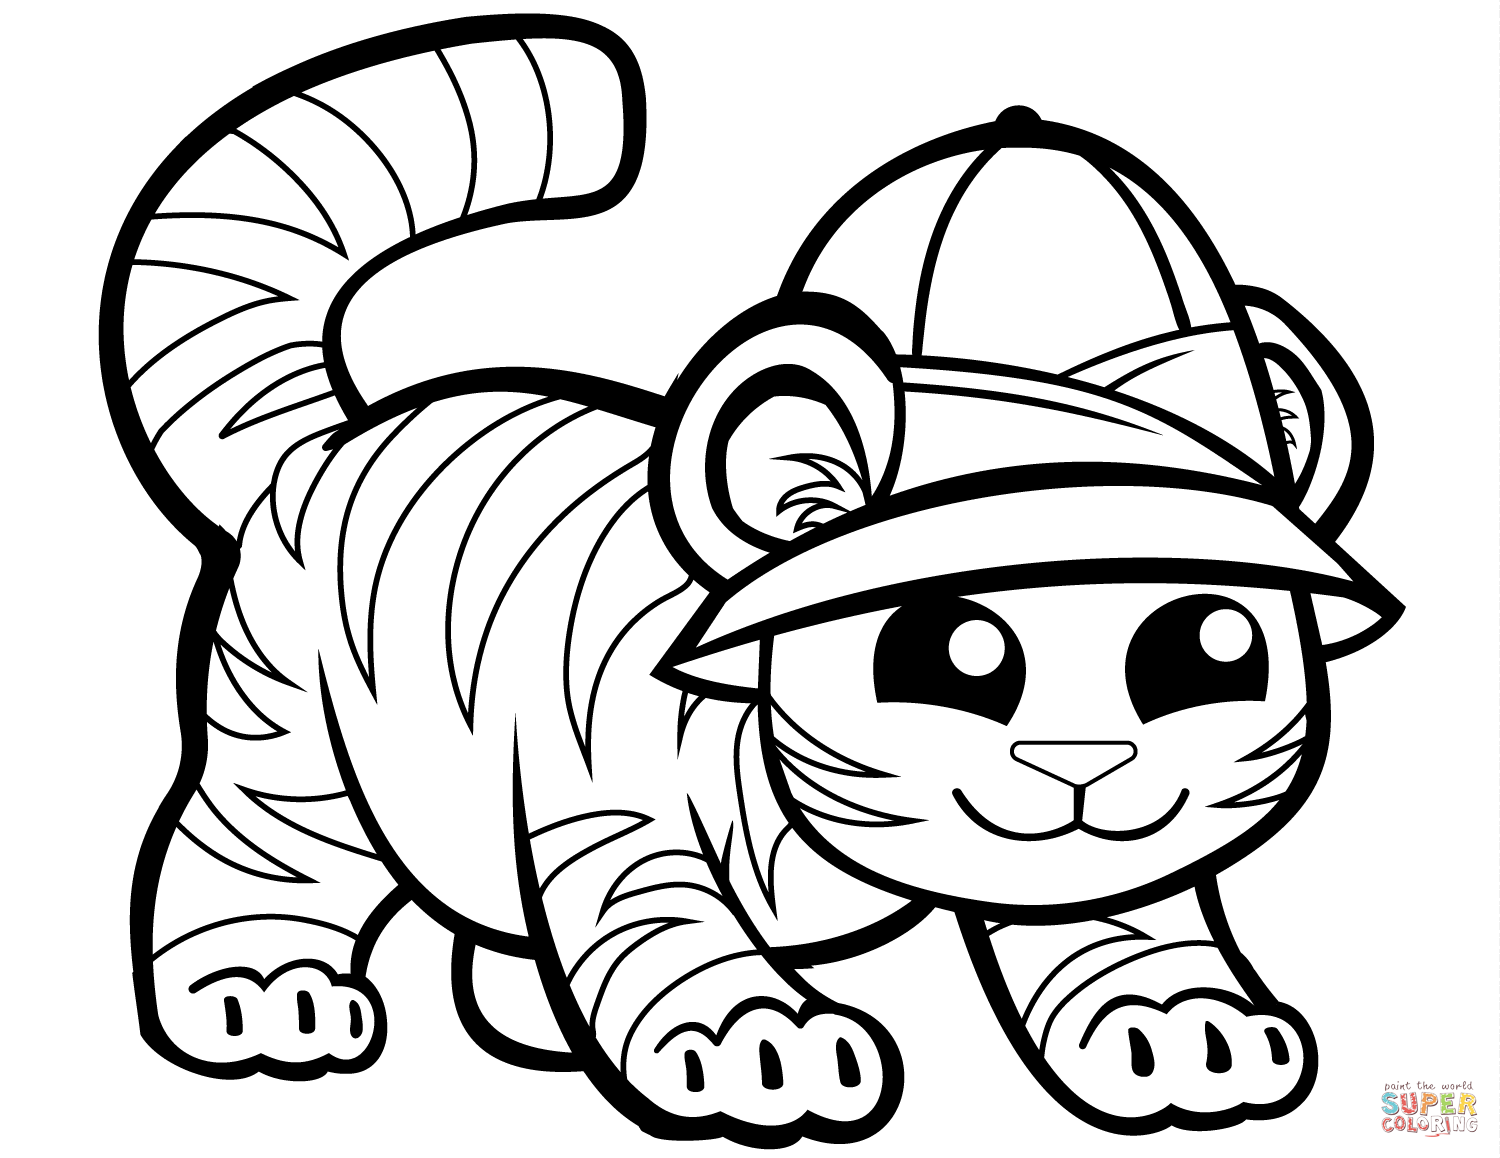 coloring page tiger tiger tigers adult coloring pages tiger page coloring